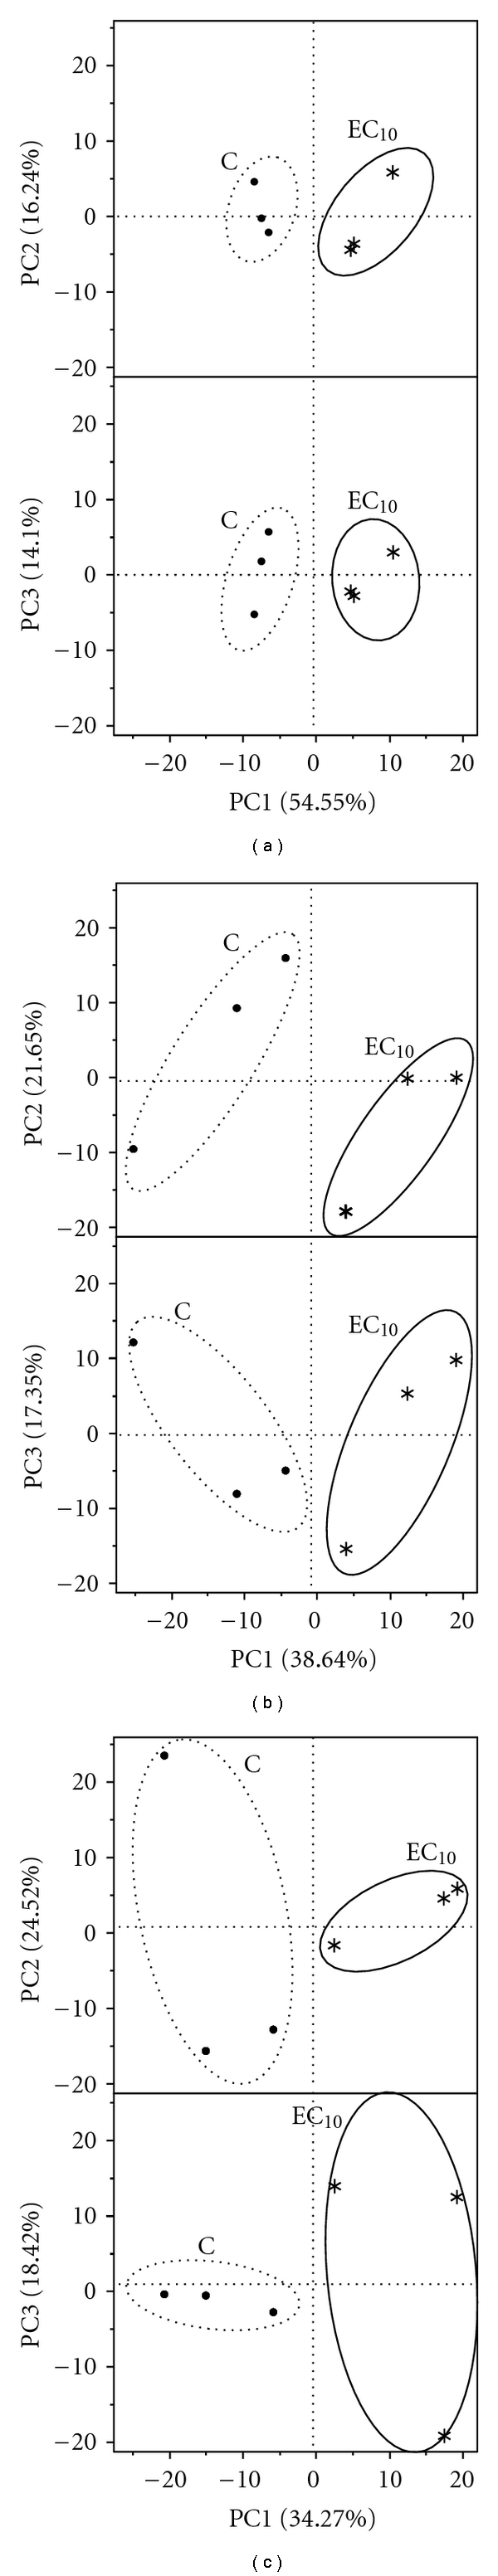 Principal component analysis scores (PC1, PC2, and PC3) for protein pattern assessment of control and treated eleutheroembryos with (a) Rotenone, (b) DNOC, and (c) Diclofenac. Control groups are indicated with c. Three independent replicates were performed for all treatment groups (EC 10 treatment with either Rotenone, DNOC, or Diclofenac).